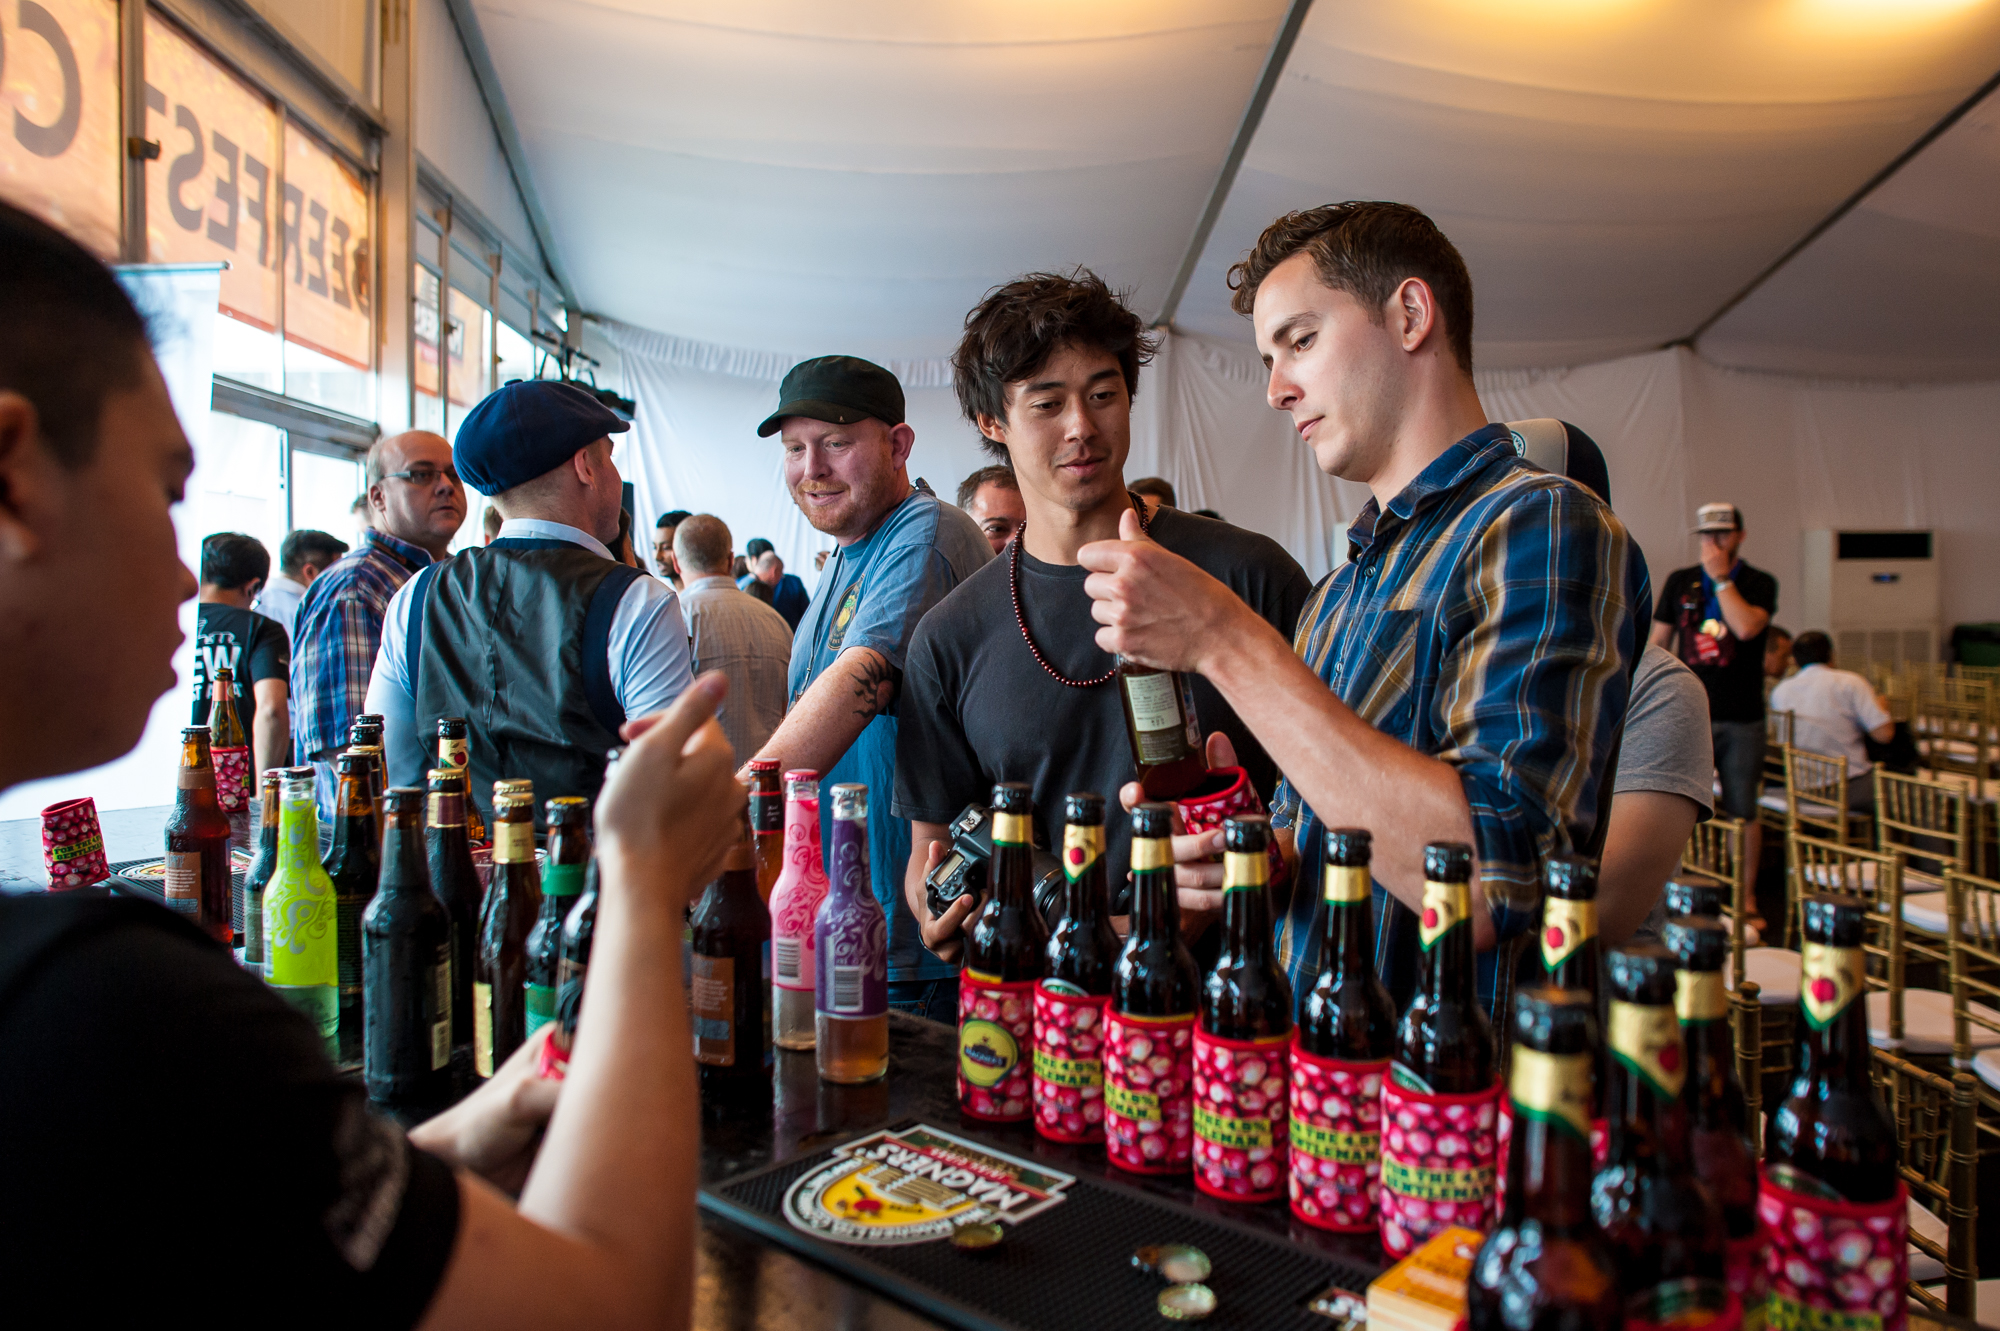 Beerfest Asia 2017 returns to Singapore in August